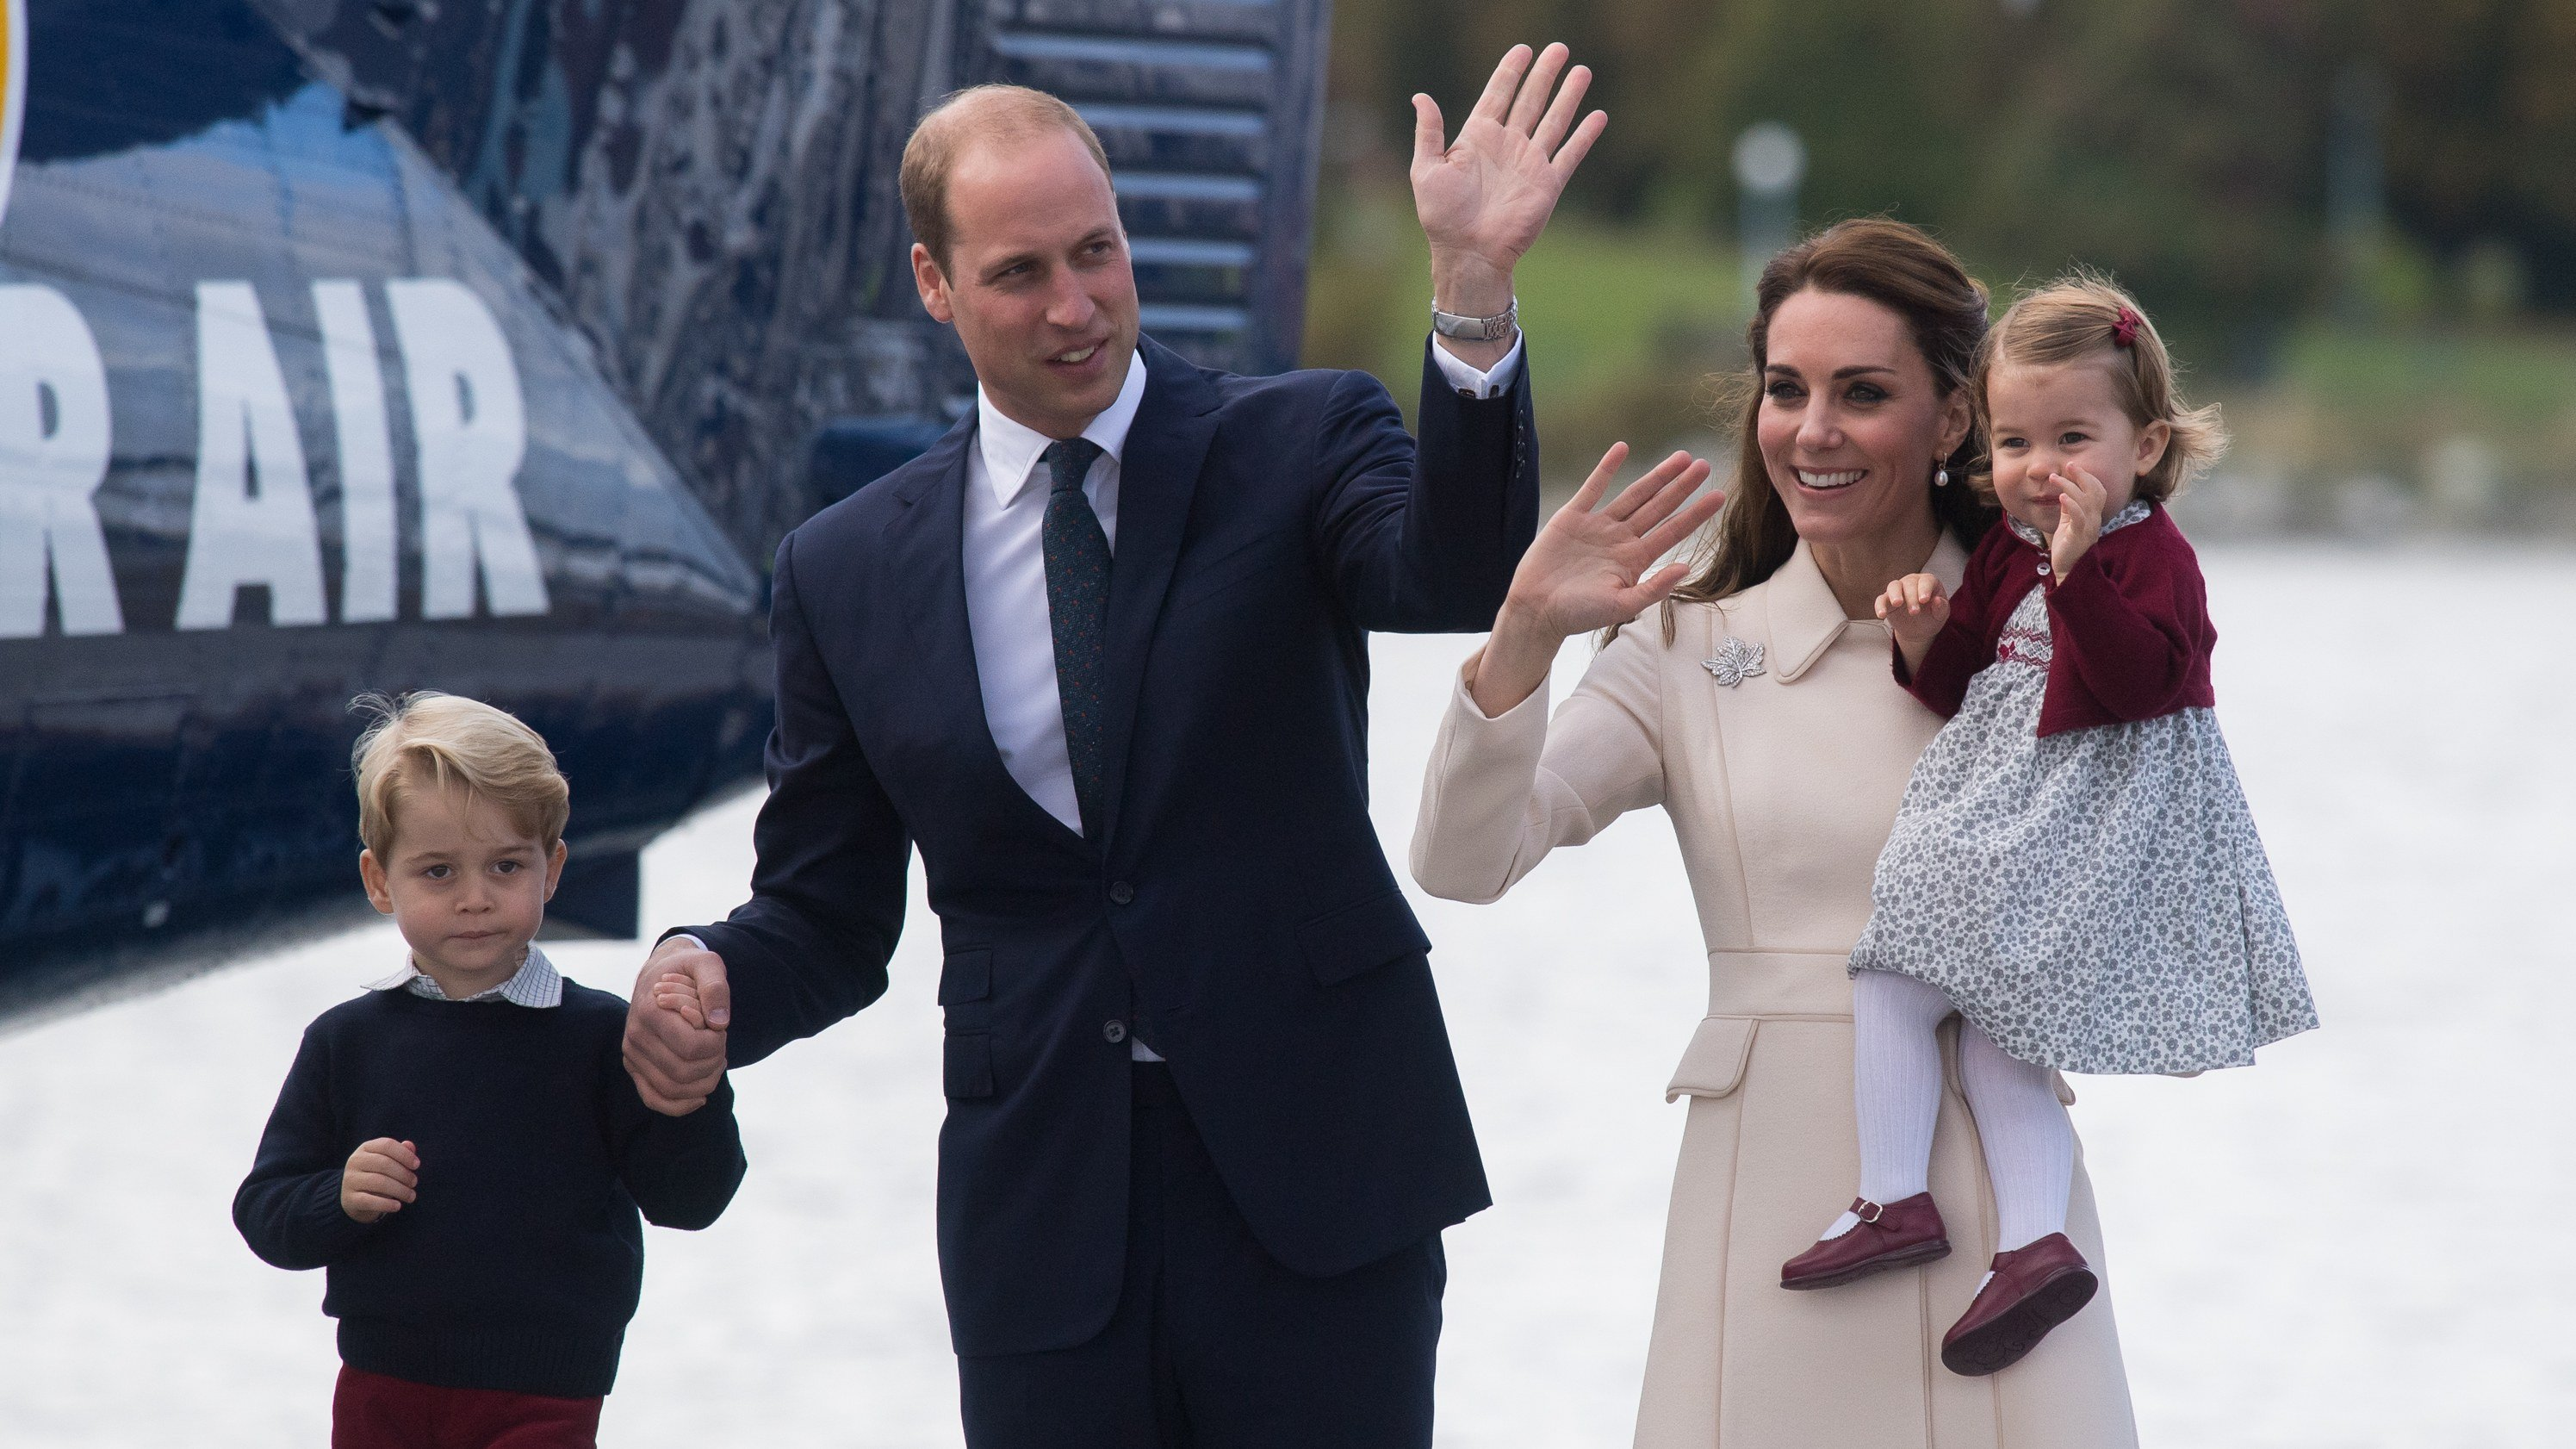 Kate Middleton Re-Wore an Old Dress at the Royal Wedding